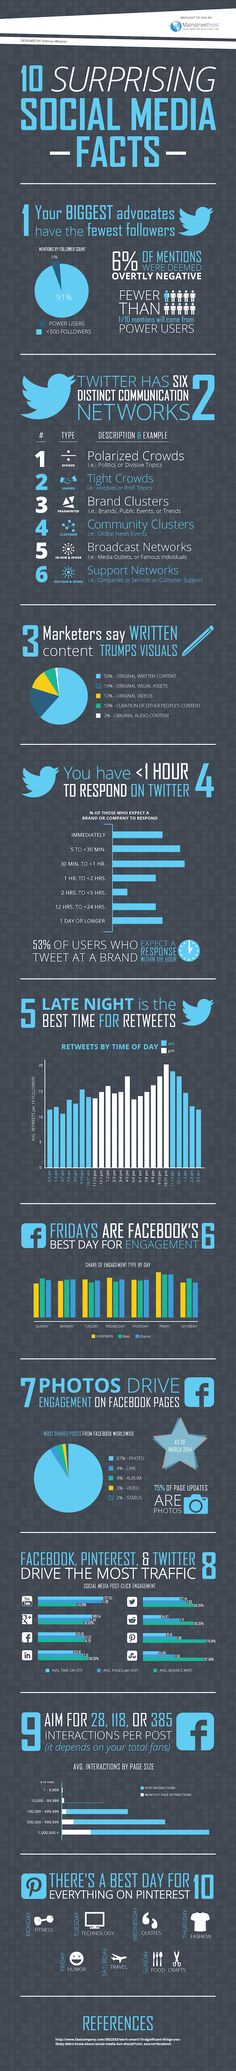 10 Surprising Social Media Facts [INFOGRAPHIC]